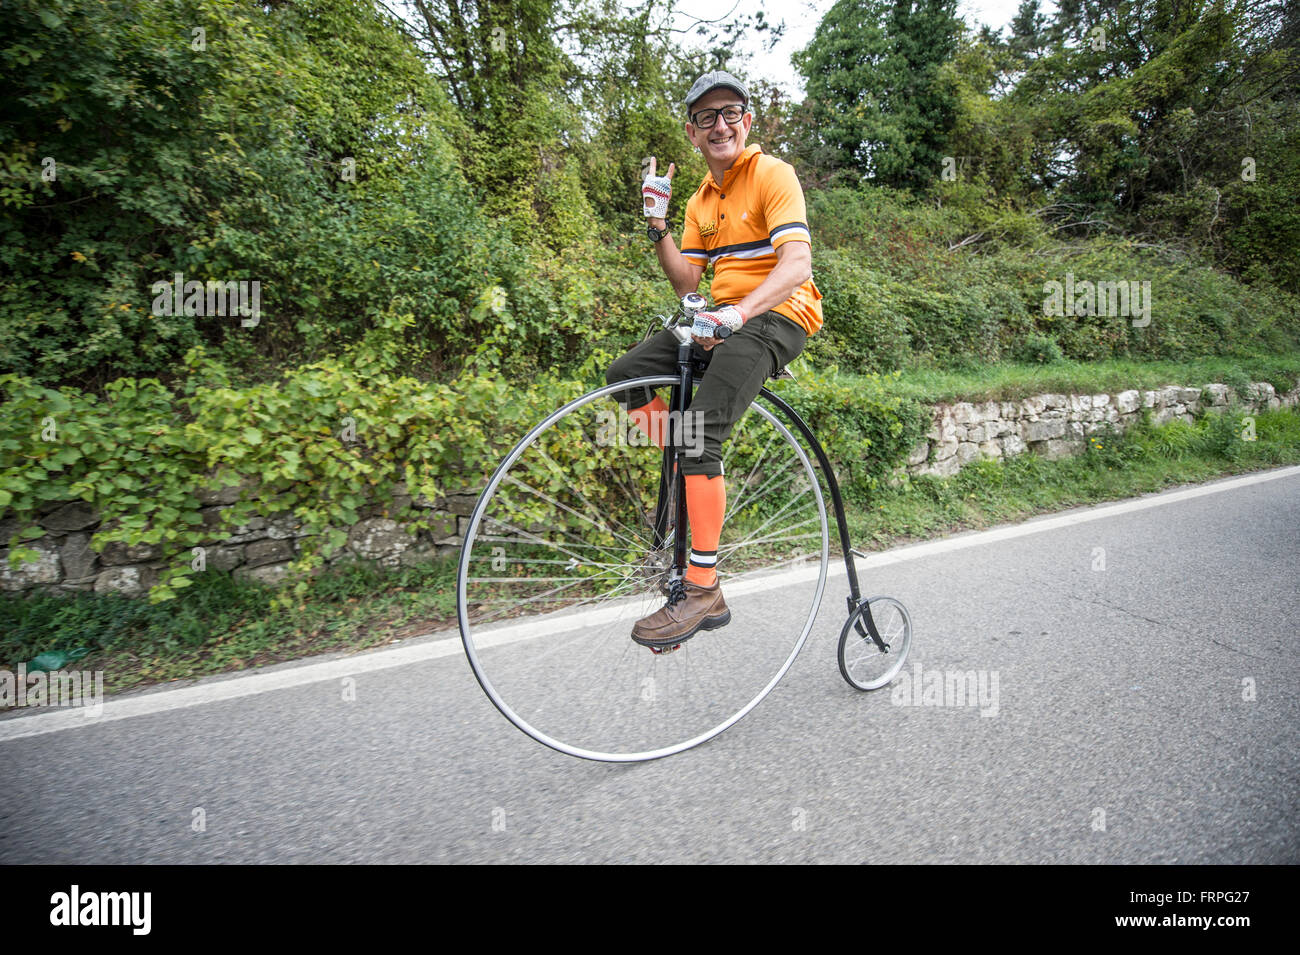 A velocipede, the ancestor of the bicycle, at the race. Eroica is a cycling event that takes place since 1997 in - Stock Image